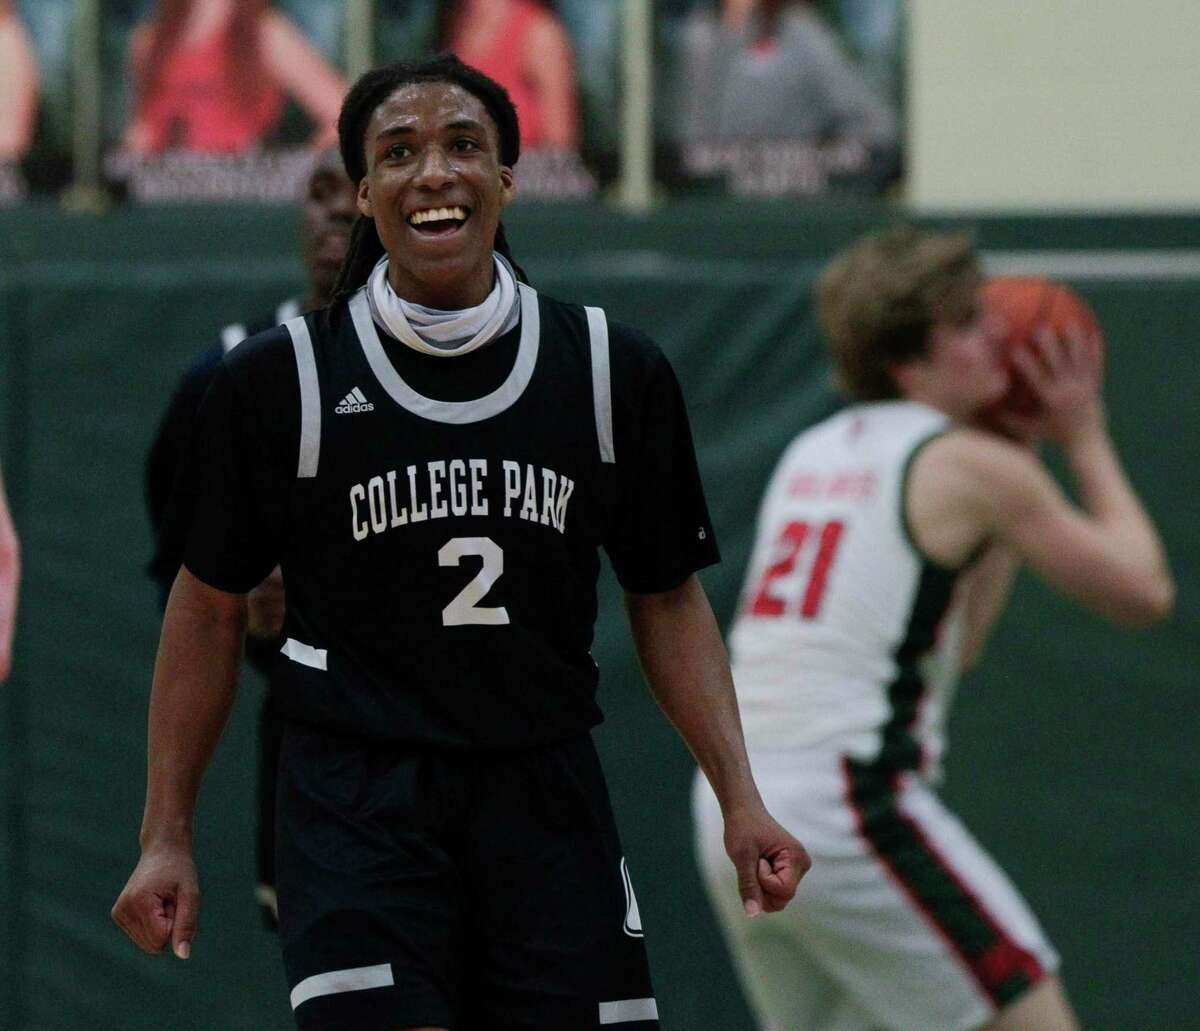 College Park guard Marvin Dock (2) shares a laugh during the second quarter of a District 13-6A high school basketball game at The Woodlands High School, Wednesday, Jan. 6, 2021, in The Woodlands.